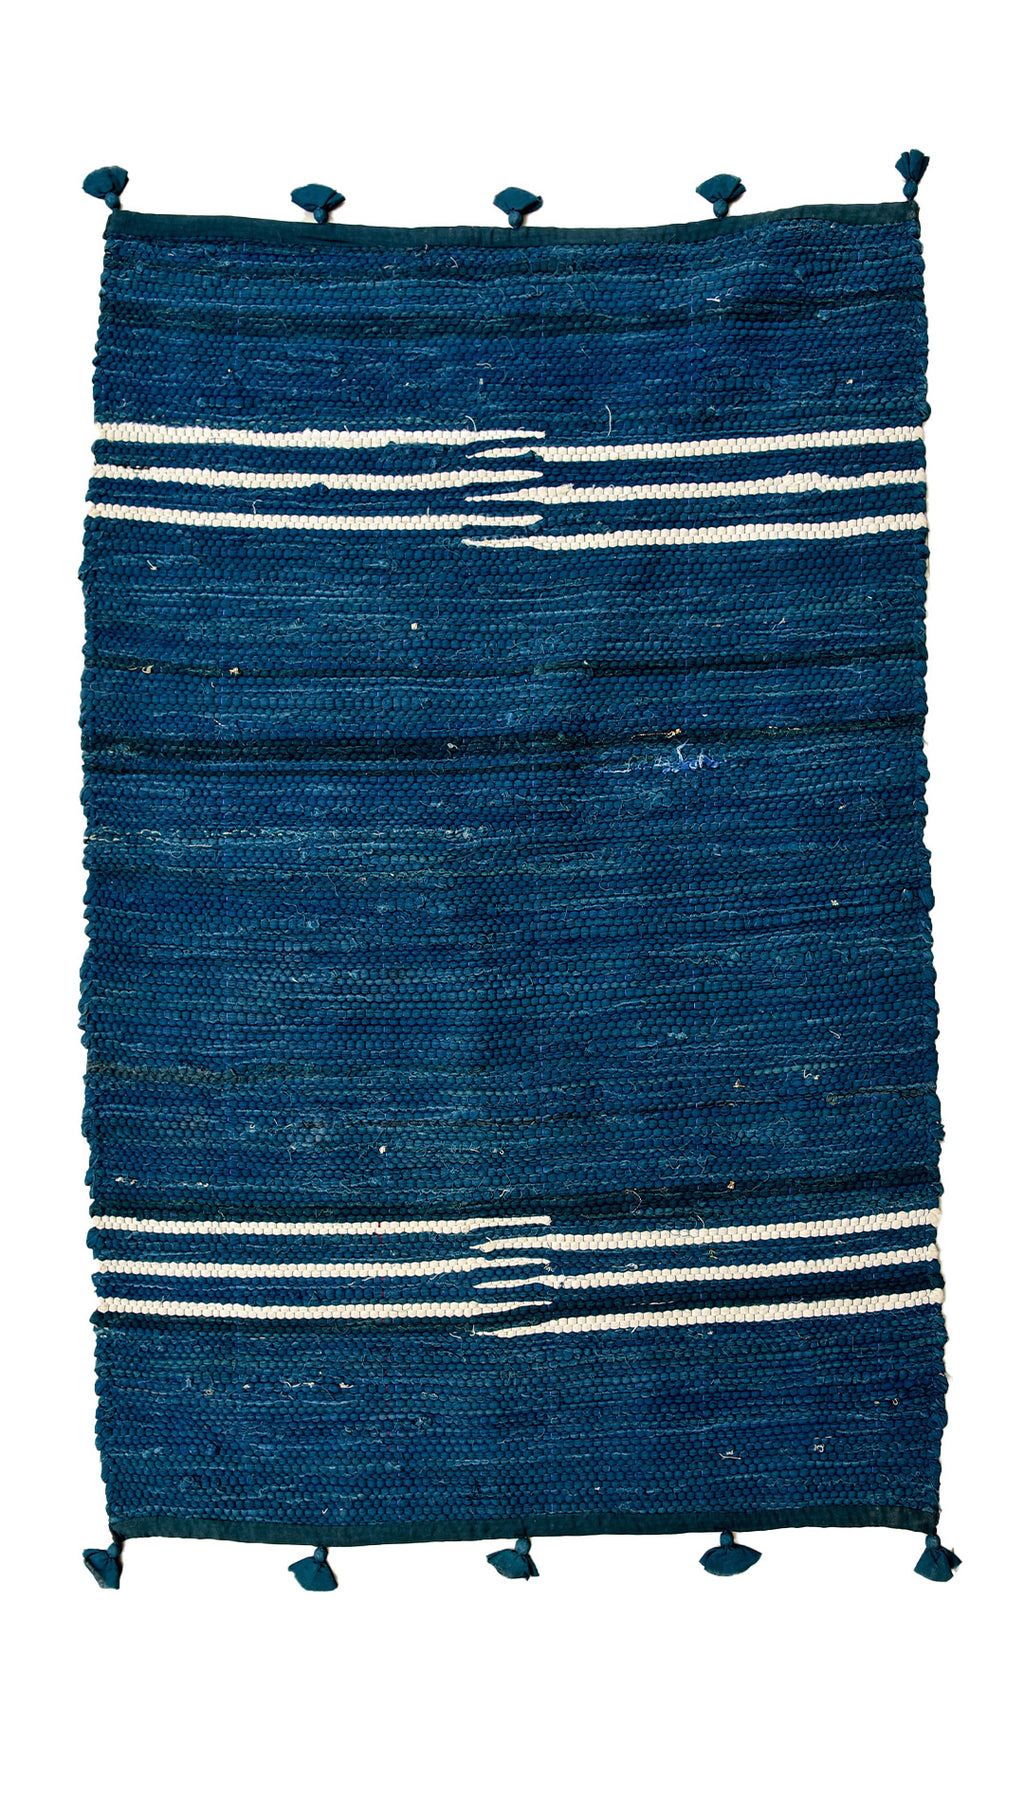 Indigo Nashpal Rug from fabric leftovers - Aavaran Udaipur